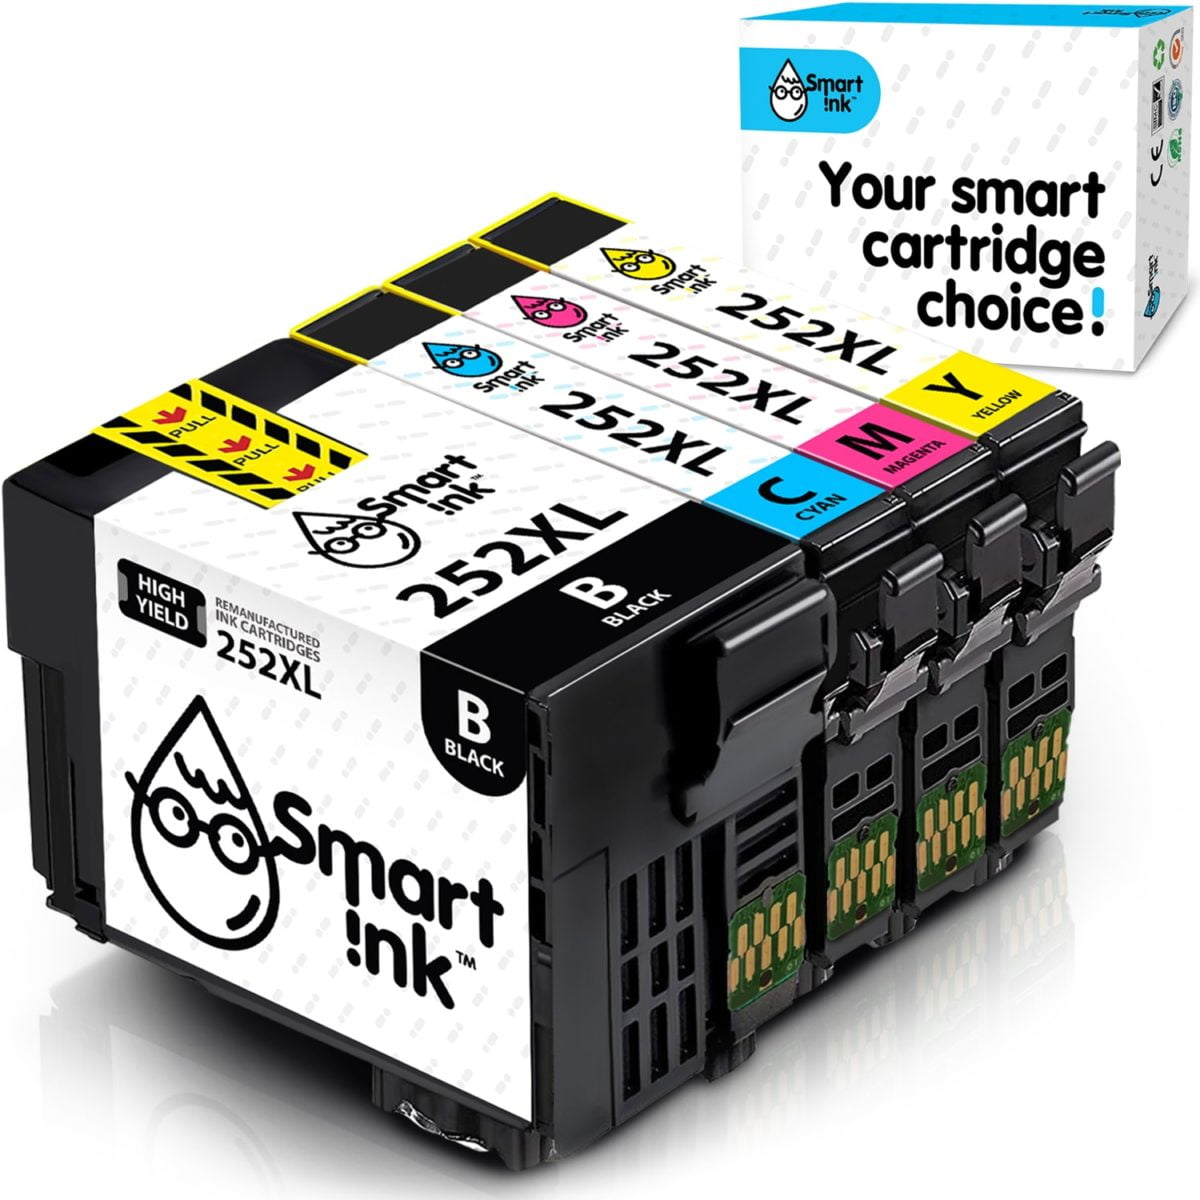 T252XL. Smart Ink Cartridge Replacement for Epson T252 XL (4 pack), Remanufactured